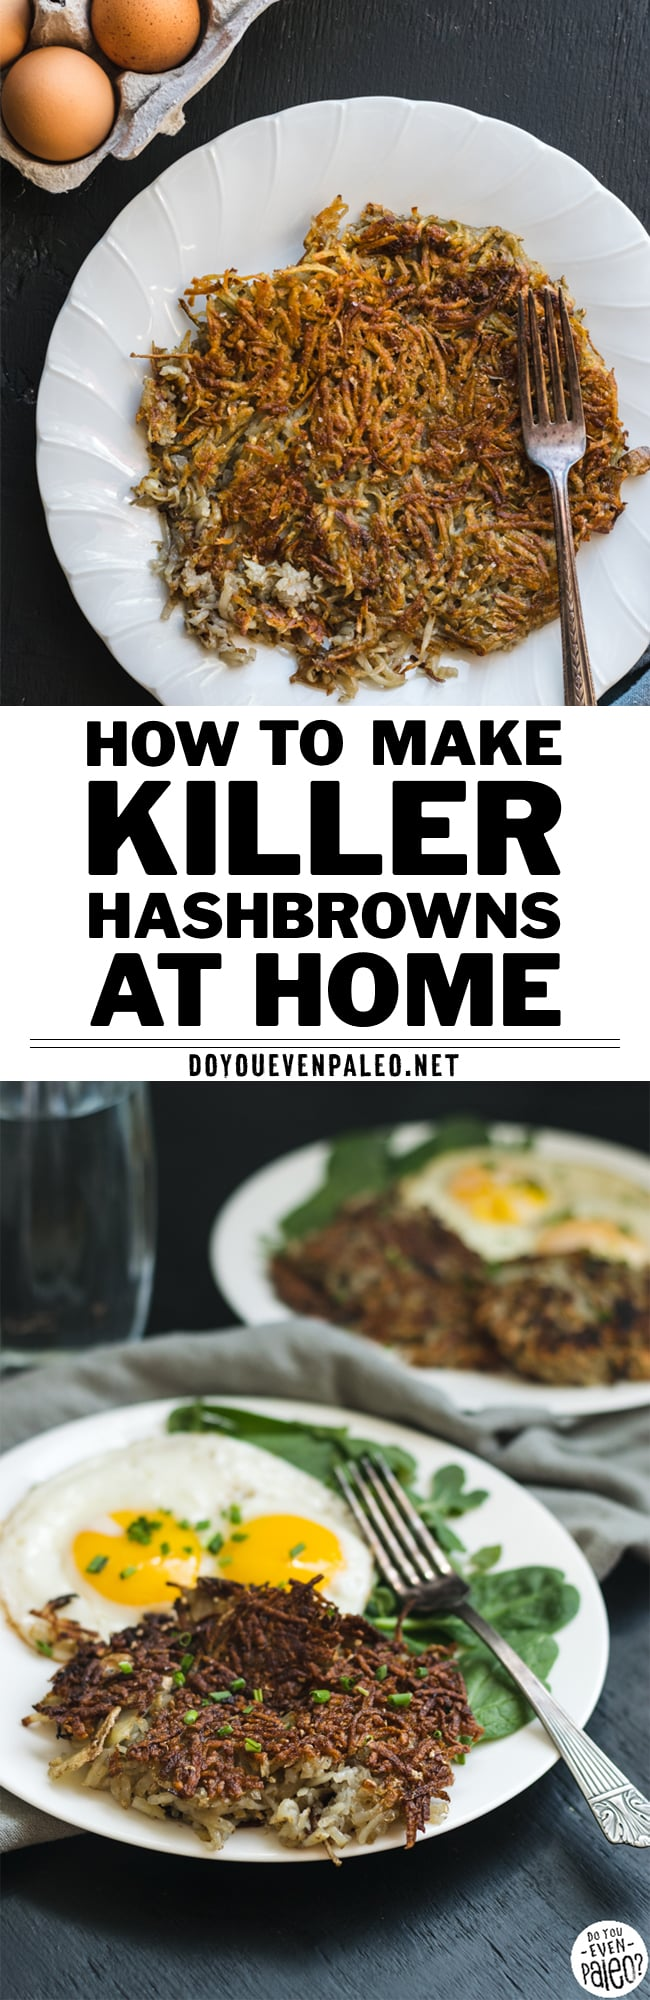 How to Make Hashbrowns at Home Recipe Pin | DoYouEvenPaleo.net